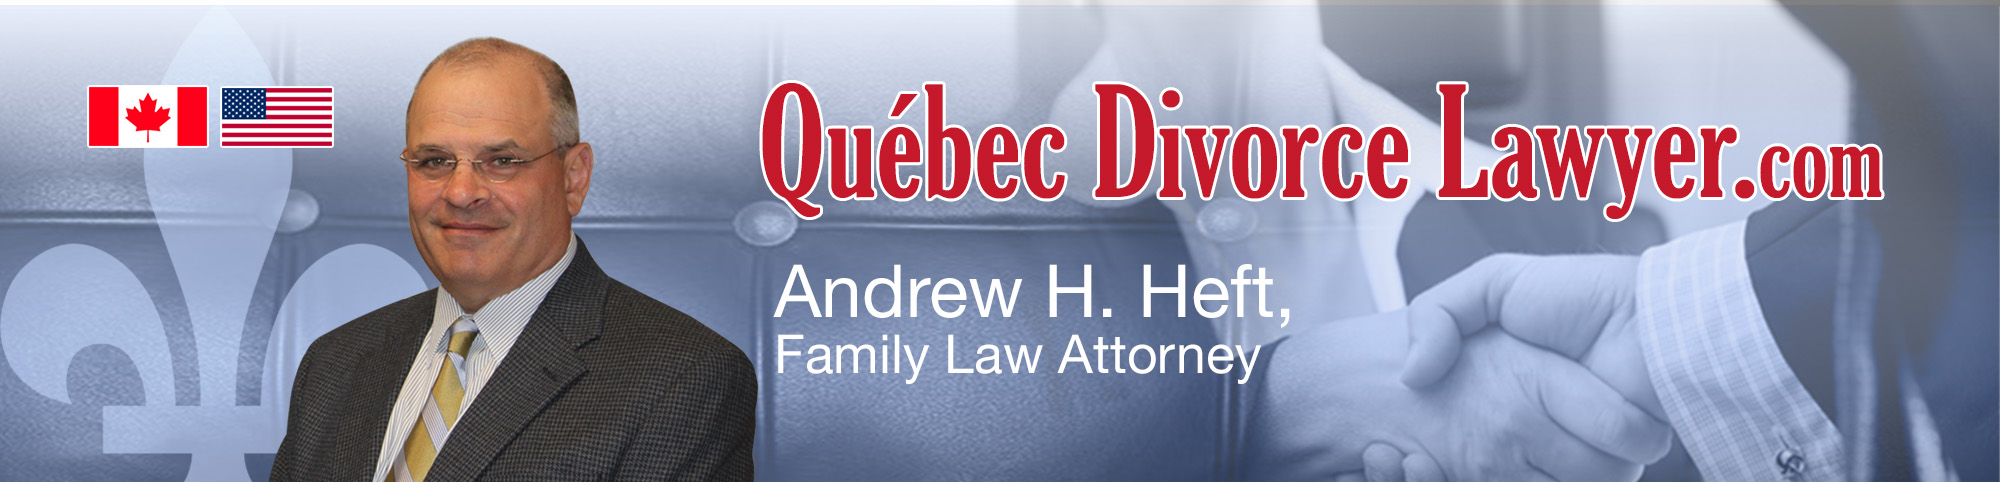 Andrew Heft Family Law Attorney